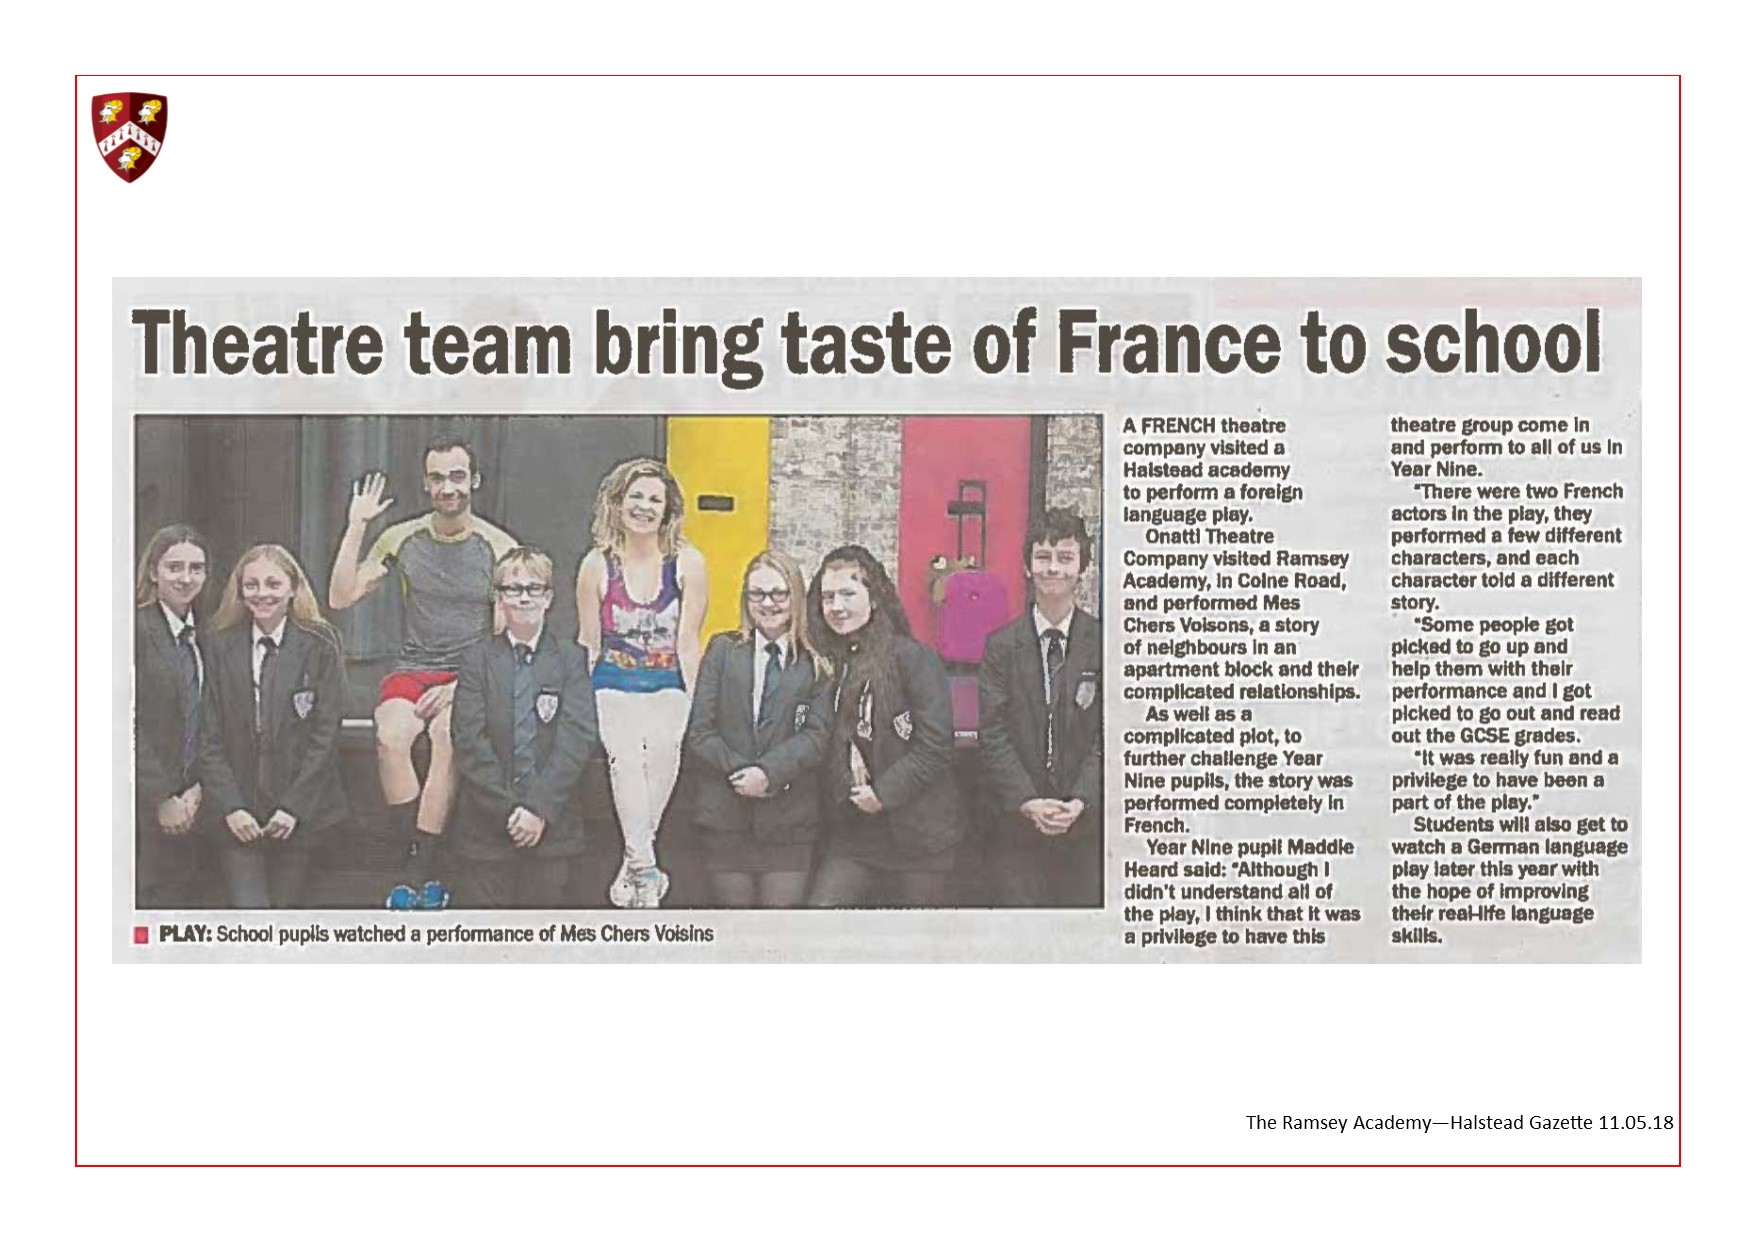 Theatre Team Bring Taste Of France To School 11.05.18